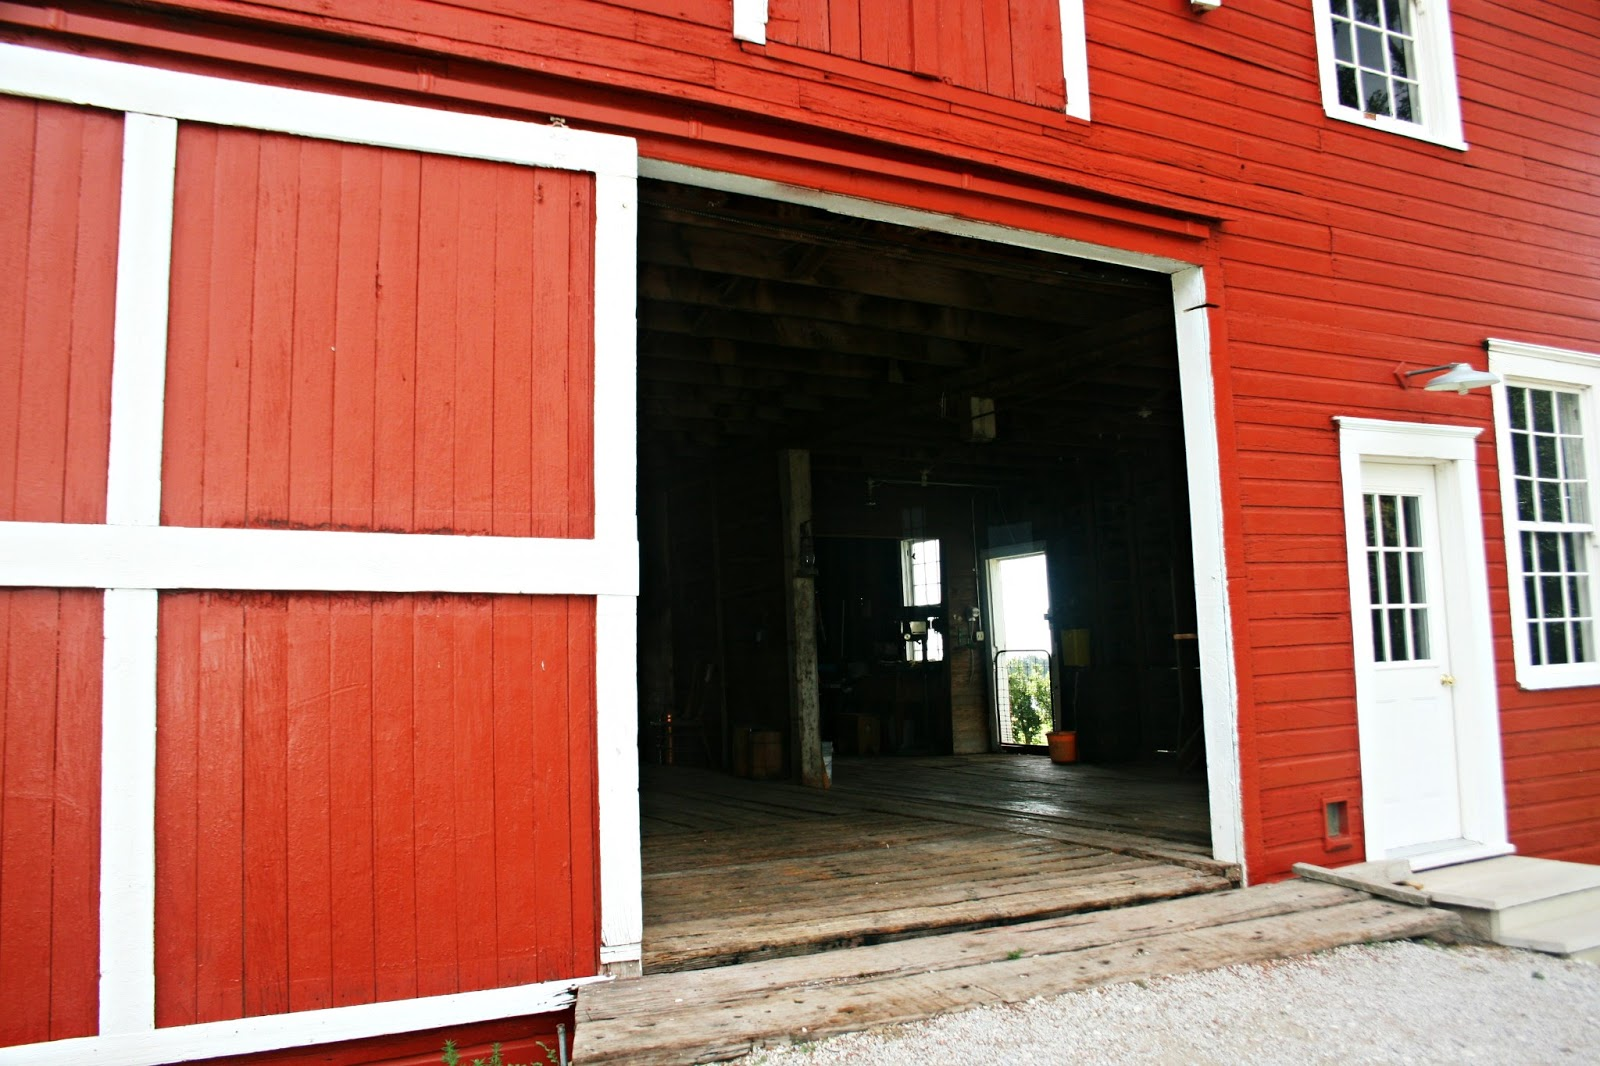 Two Bears Farm and the Three Cubs: The Best Barn Ever